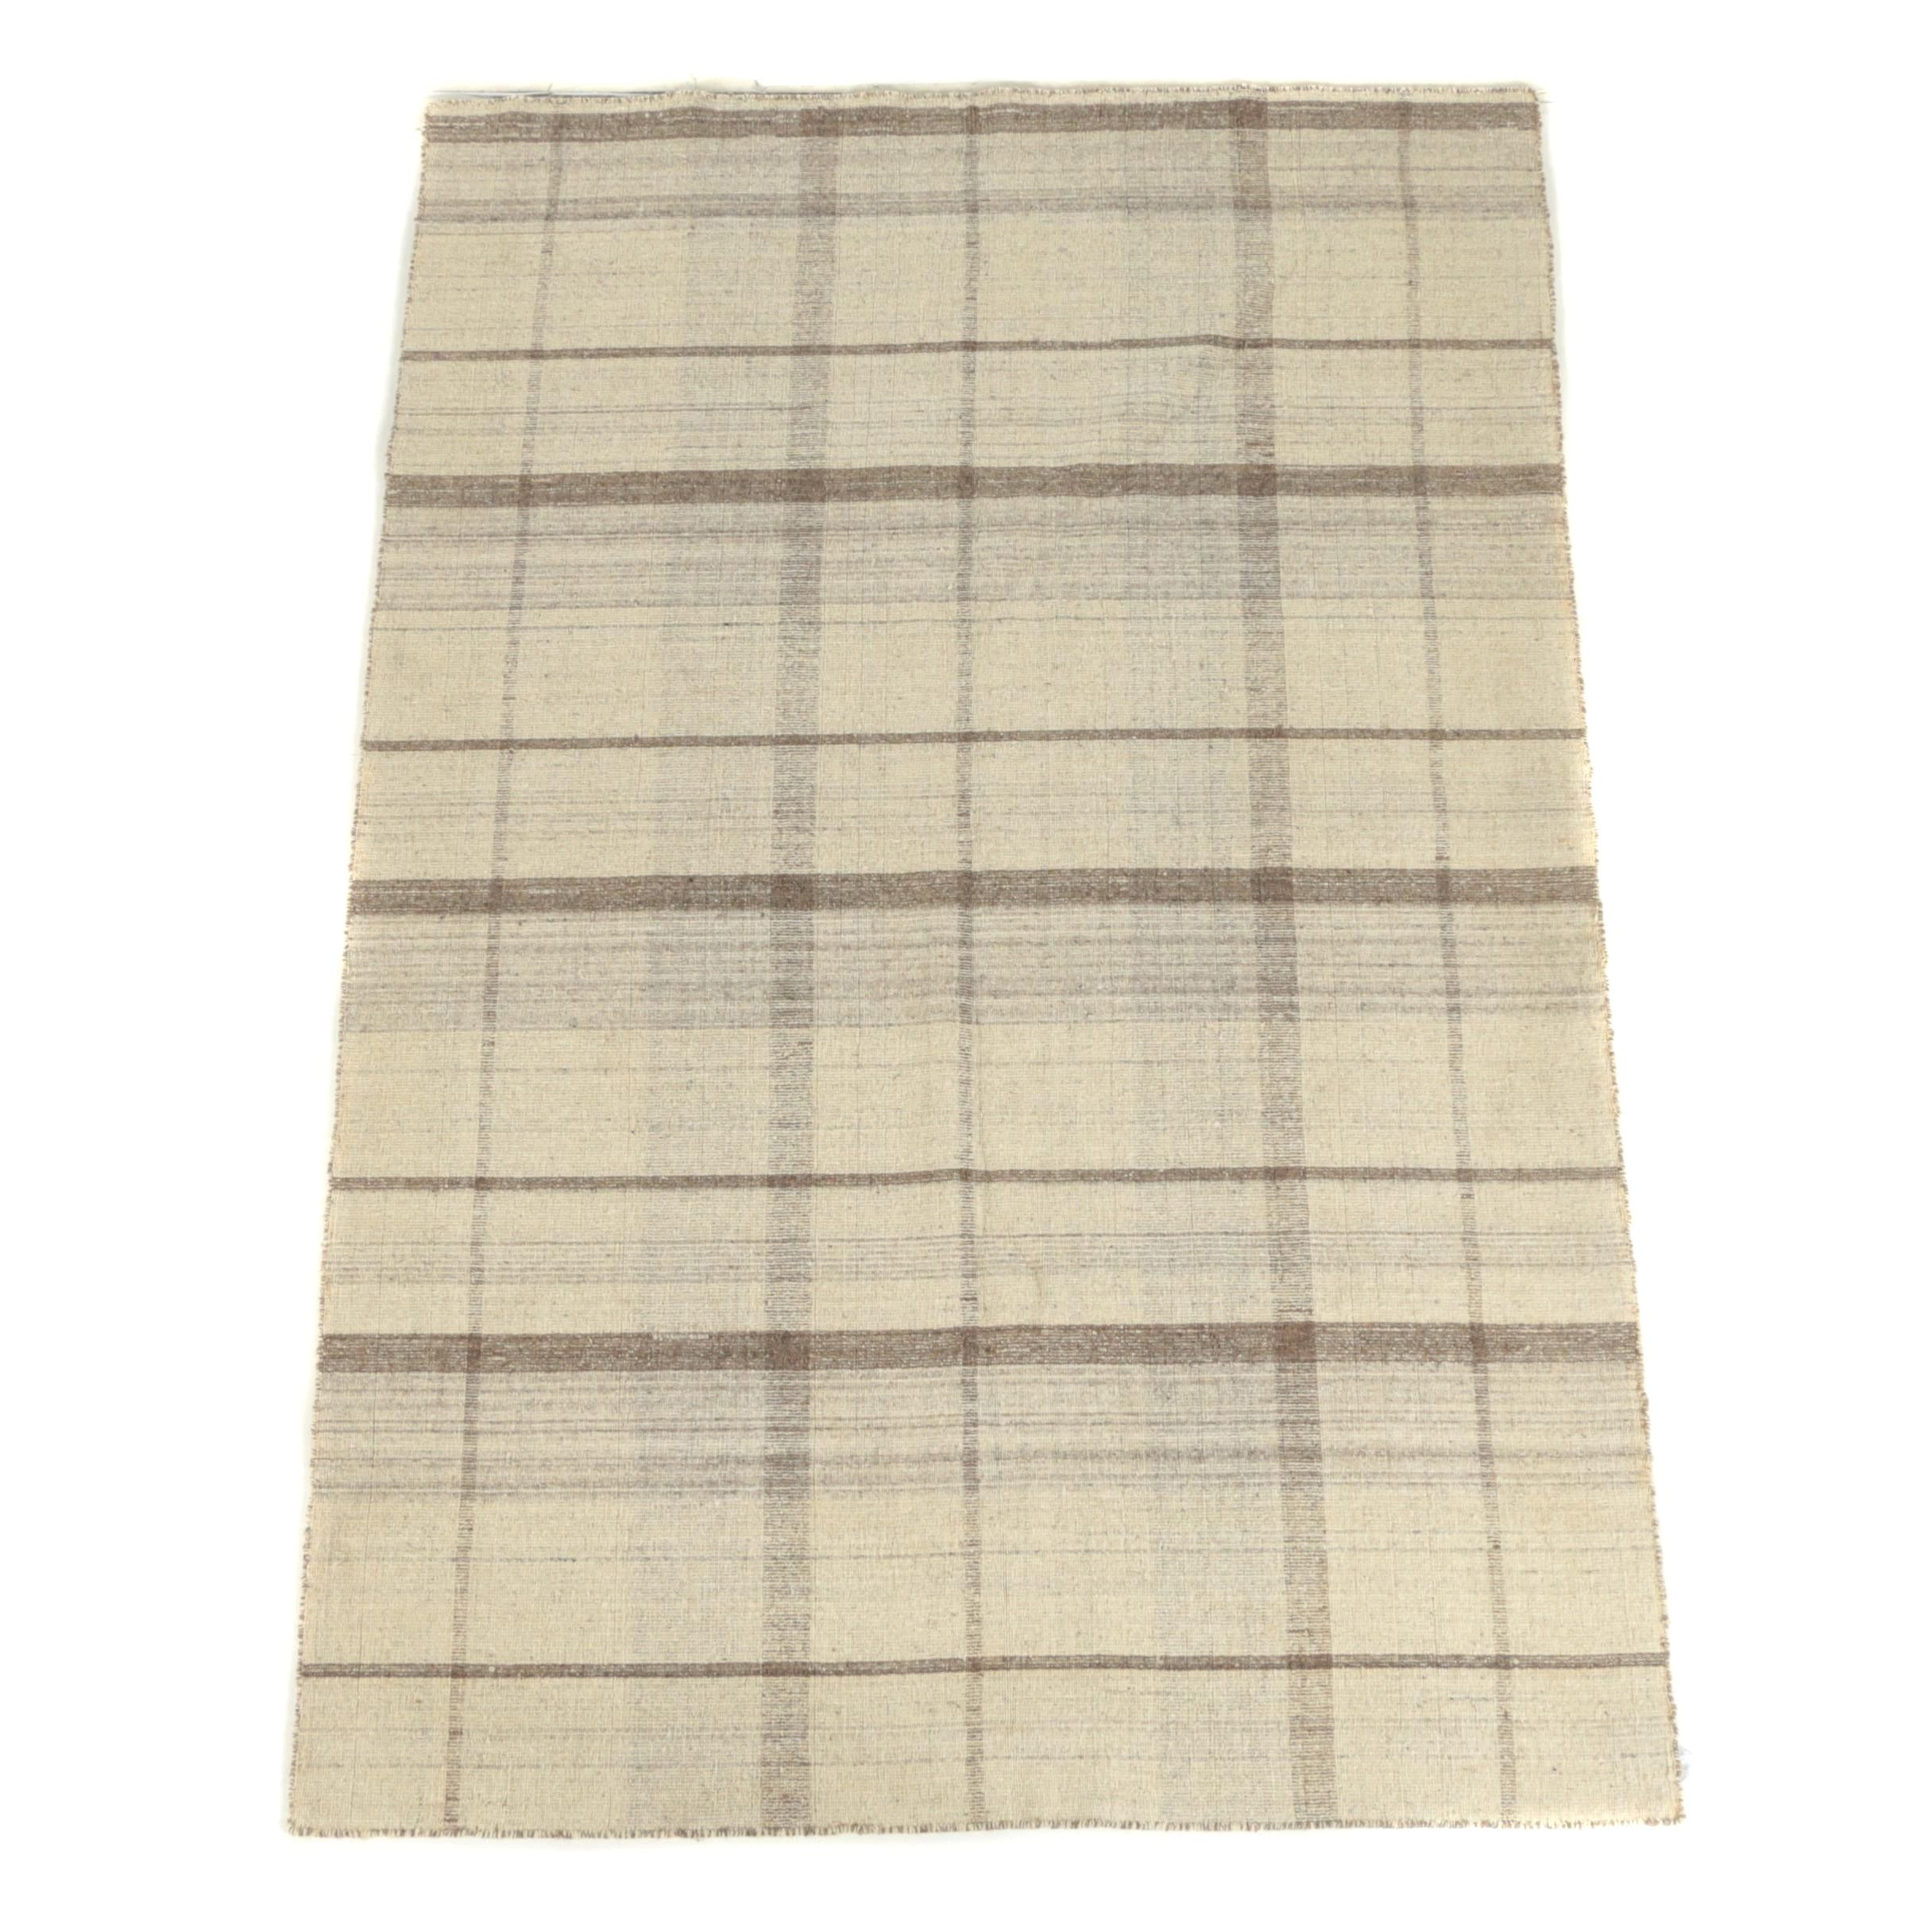 Woven Plaid Patterned Druggett Wool Area Rug